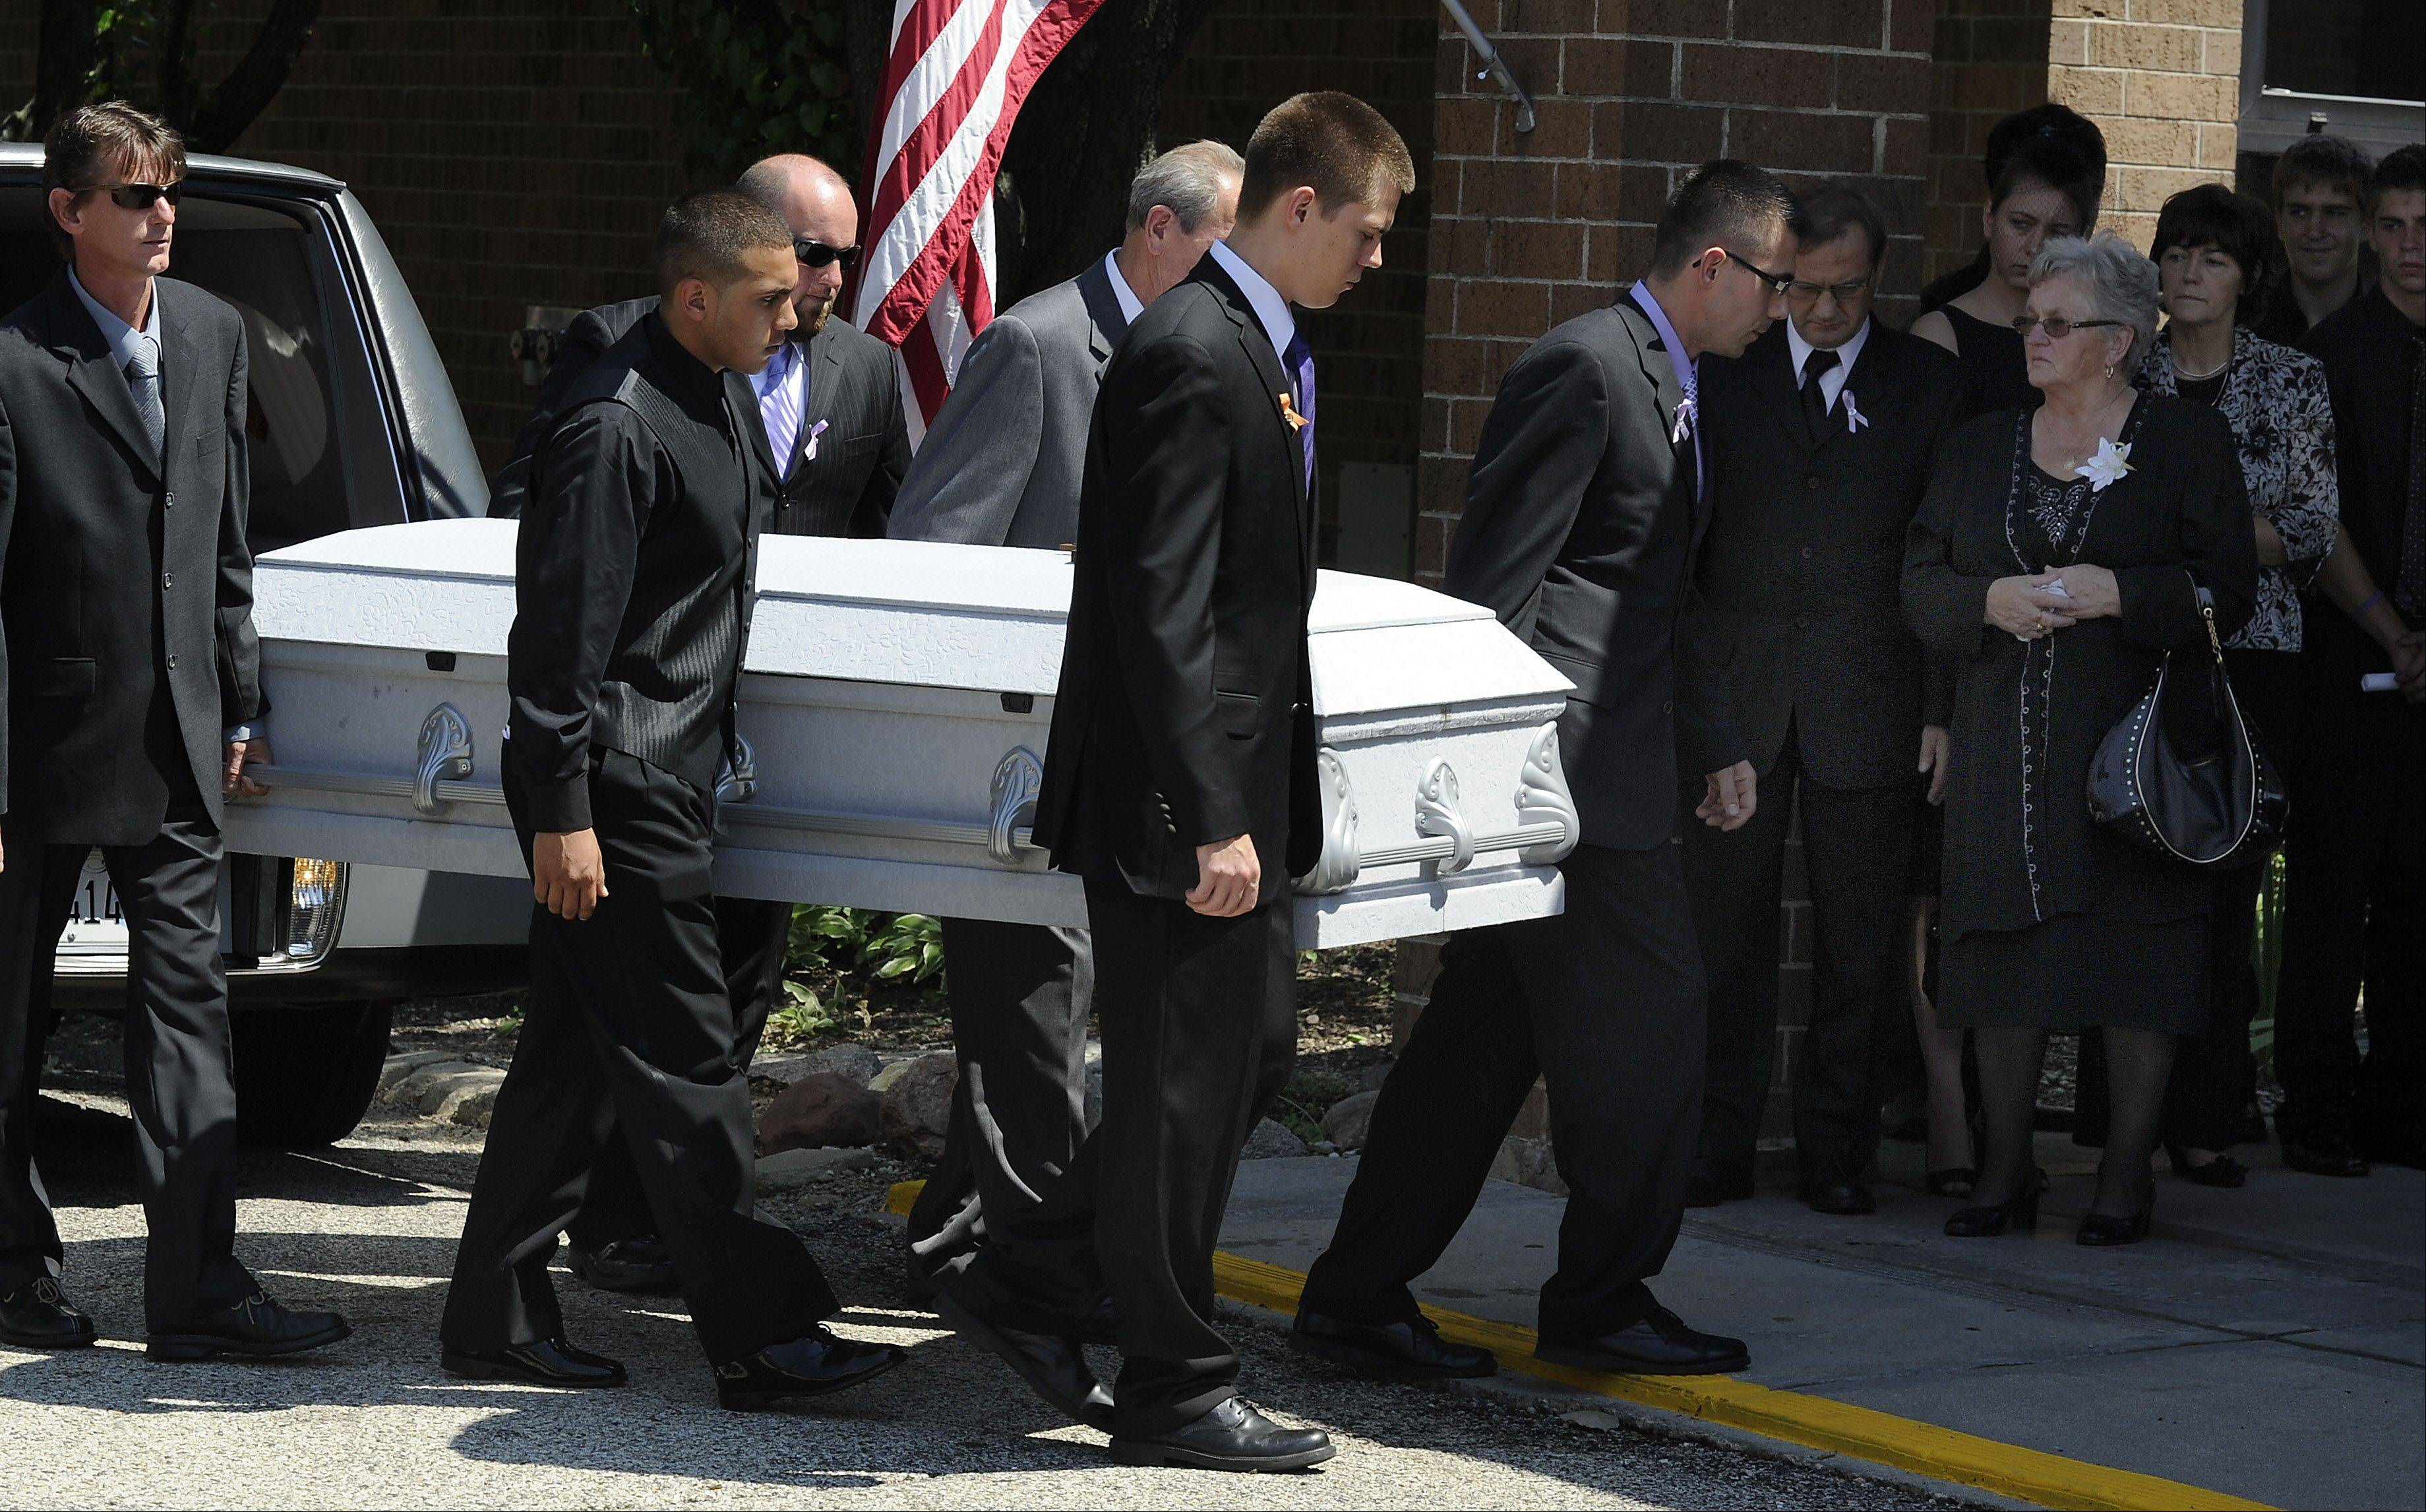 Gabriella Drozdz of Lake Zurich, who was killed in a hit-and-run accident, is carried into the St. Francis de Sales Catholic Church in Lake Zurich on Saturday.